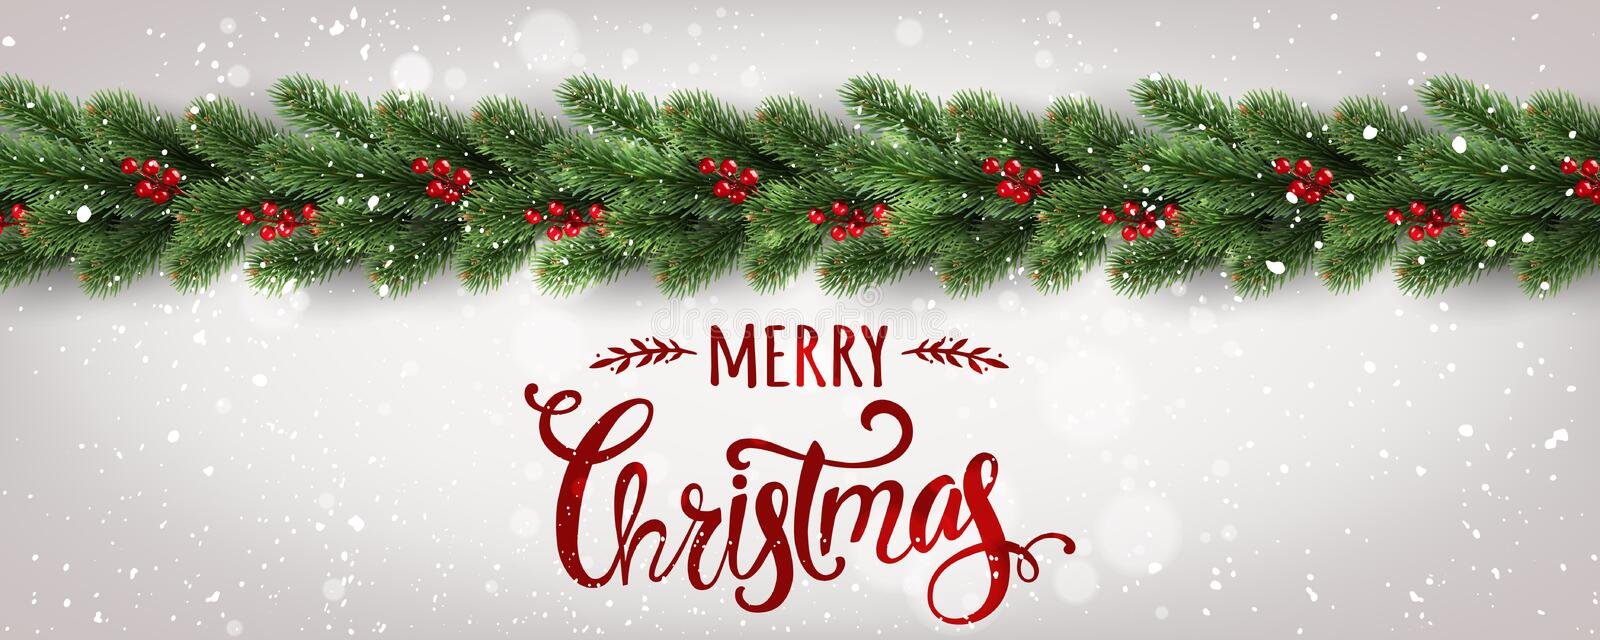 Merry Christmas Typographical on white background with tree branches decorated with berries, lights, snowflakes. vector illustration